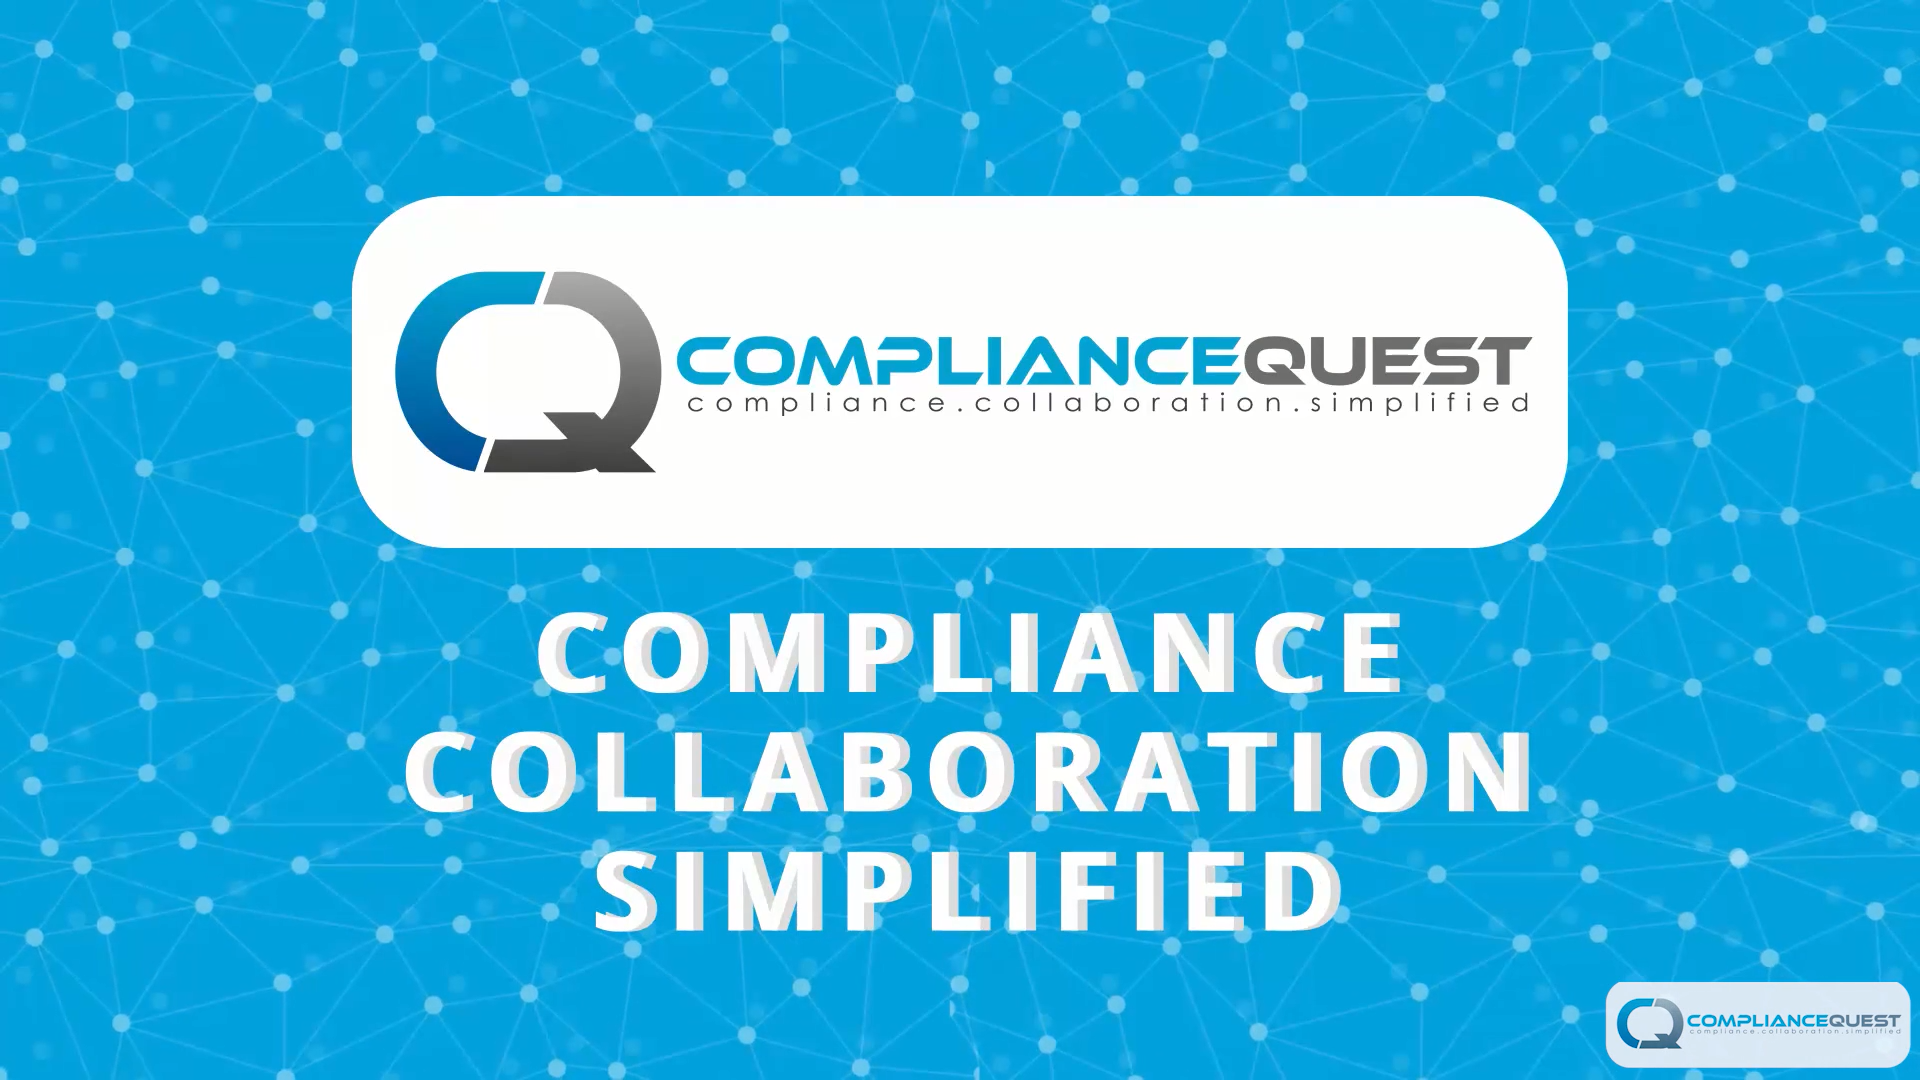 ComplianceQuest Introductory Video - Worked on the concept and script for this video. Coordinated closely with the agency to get all the details right.#Video #ContentStrategy #ContentDesign